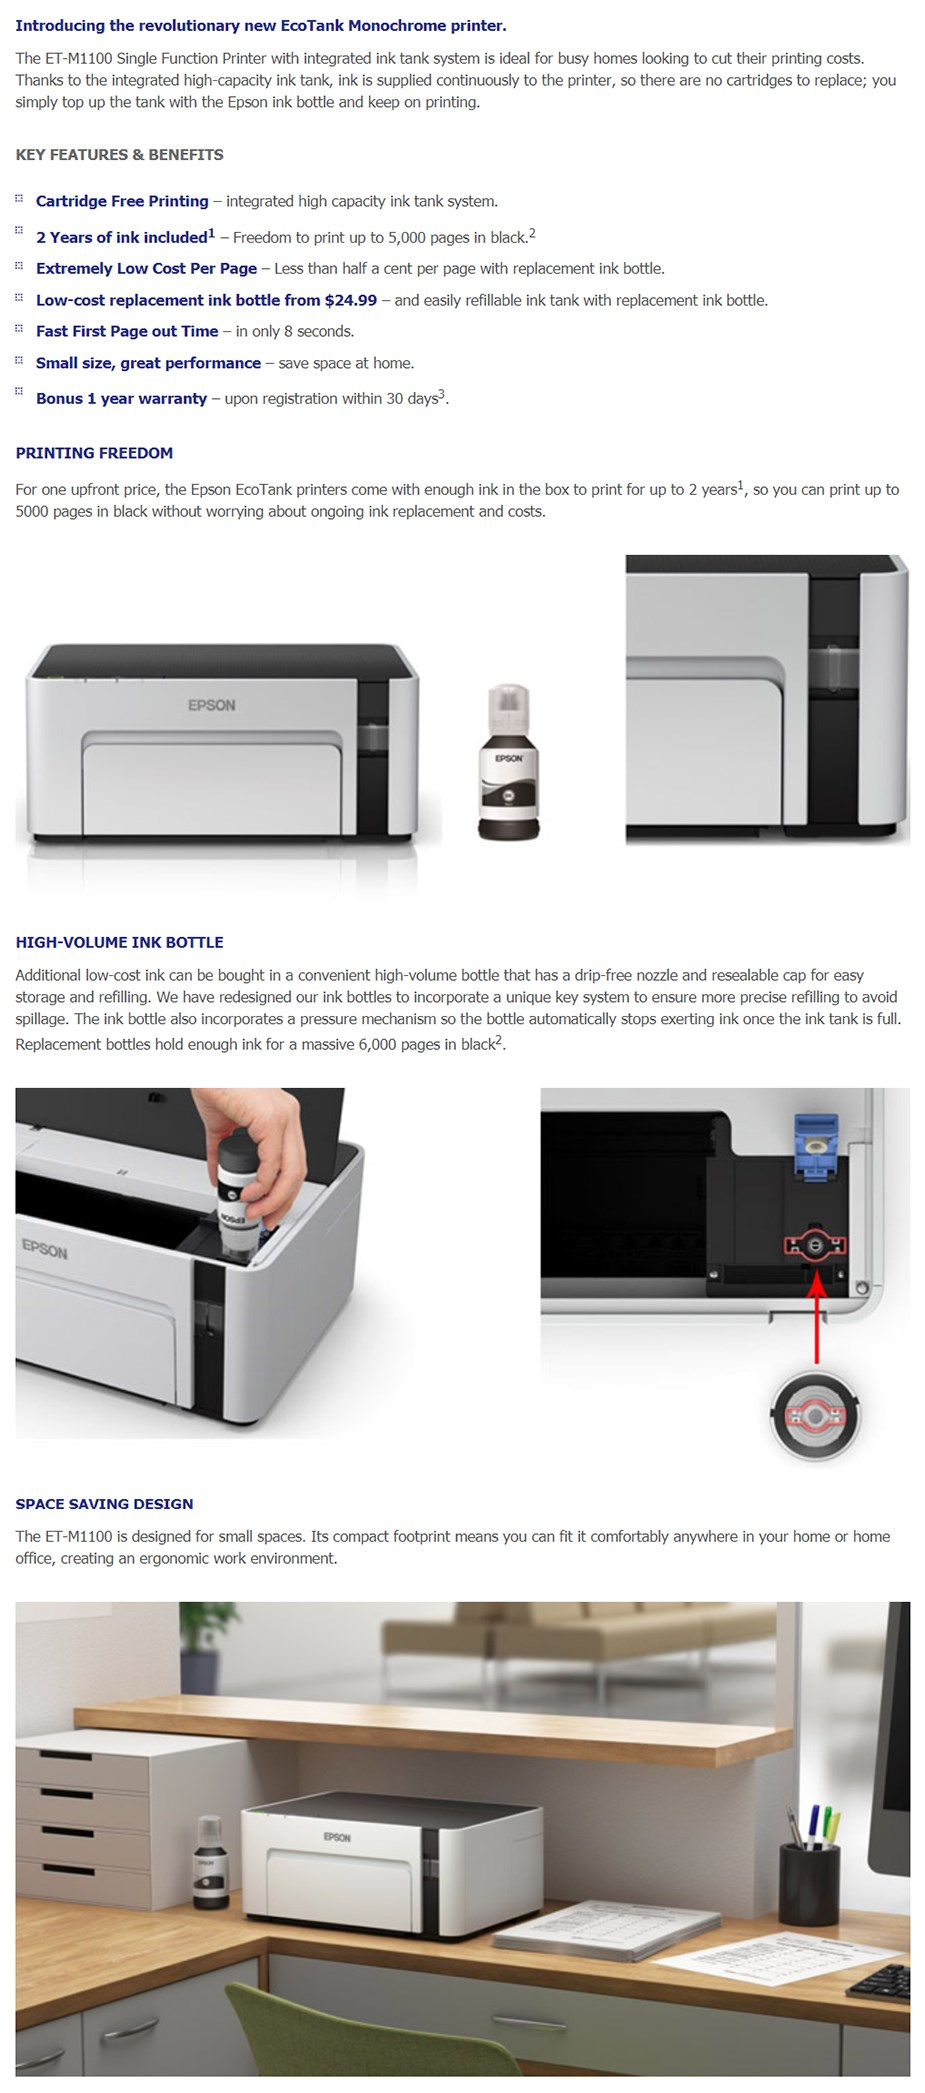 A large marketing image providing additional information about the product Epson EcoTank Mono ET-M1100 Printer - Additional alt info not provided